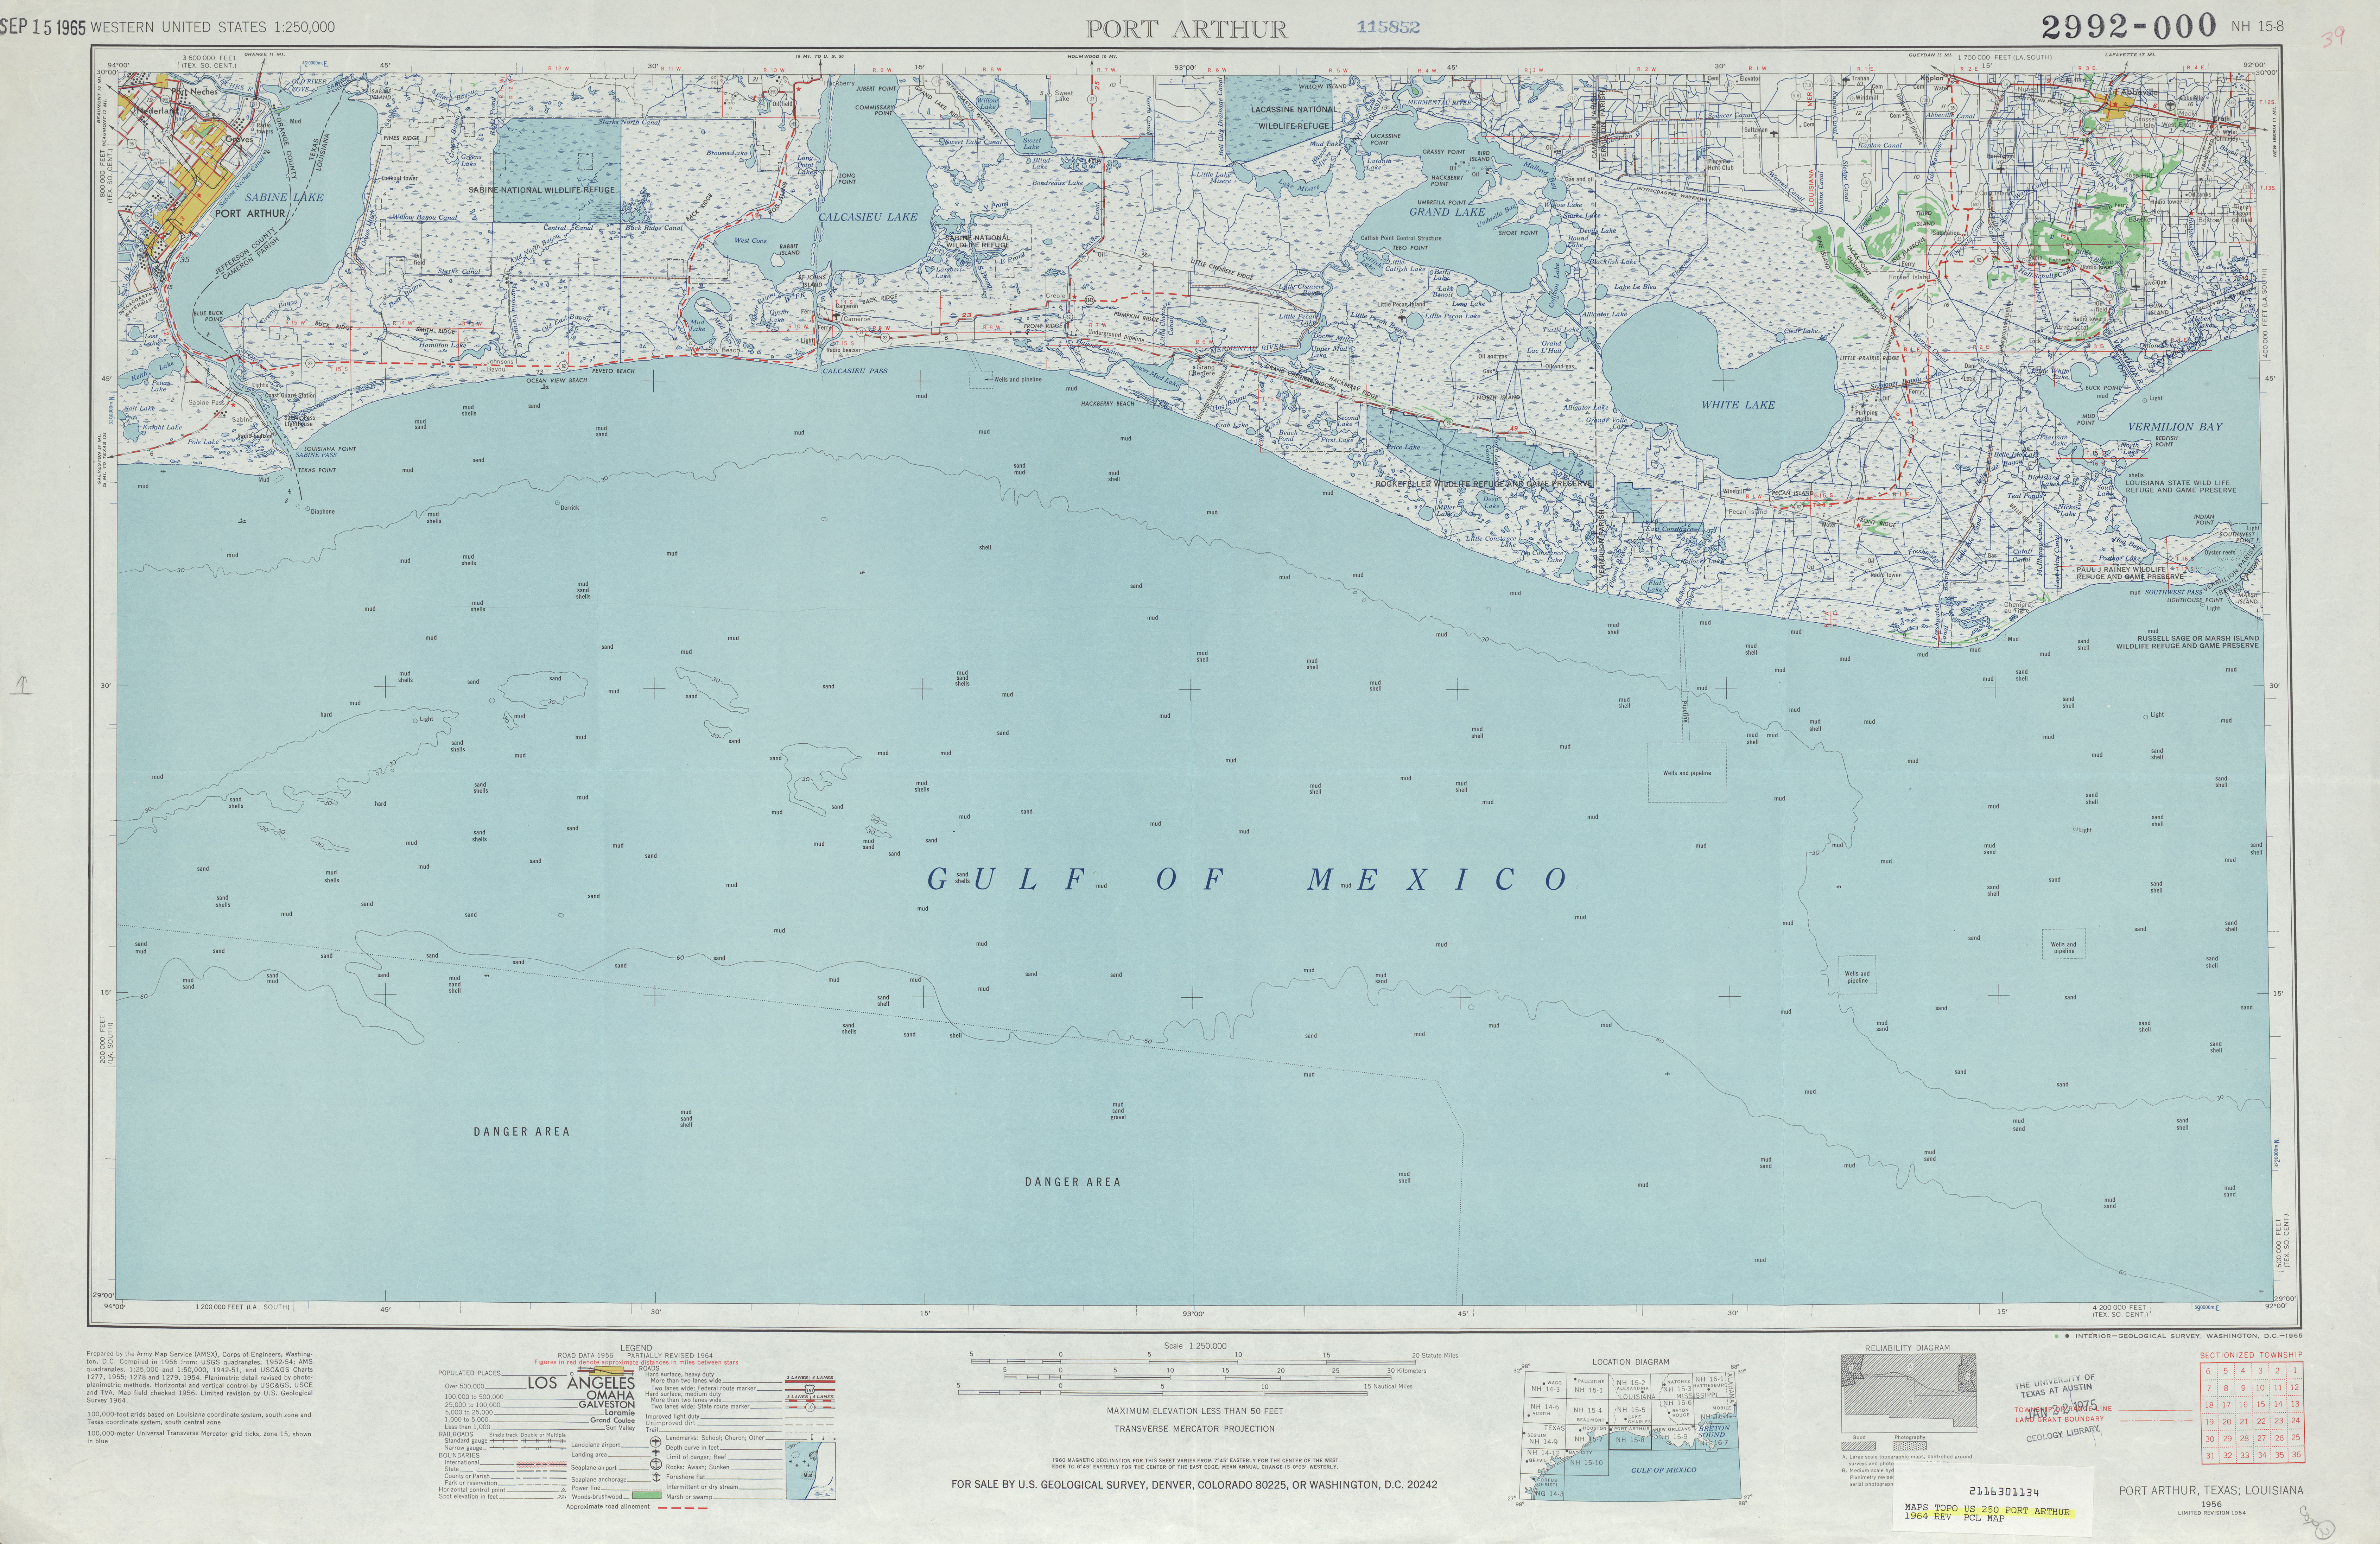 Port Arthur Topographic Map Sheet, United States 1964